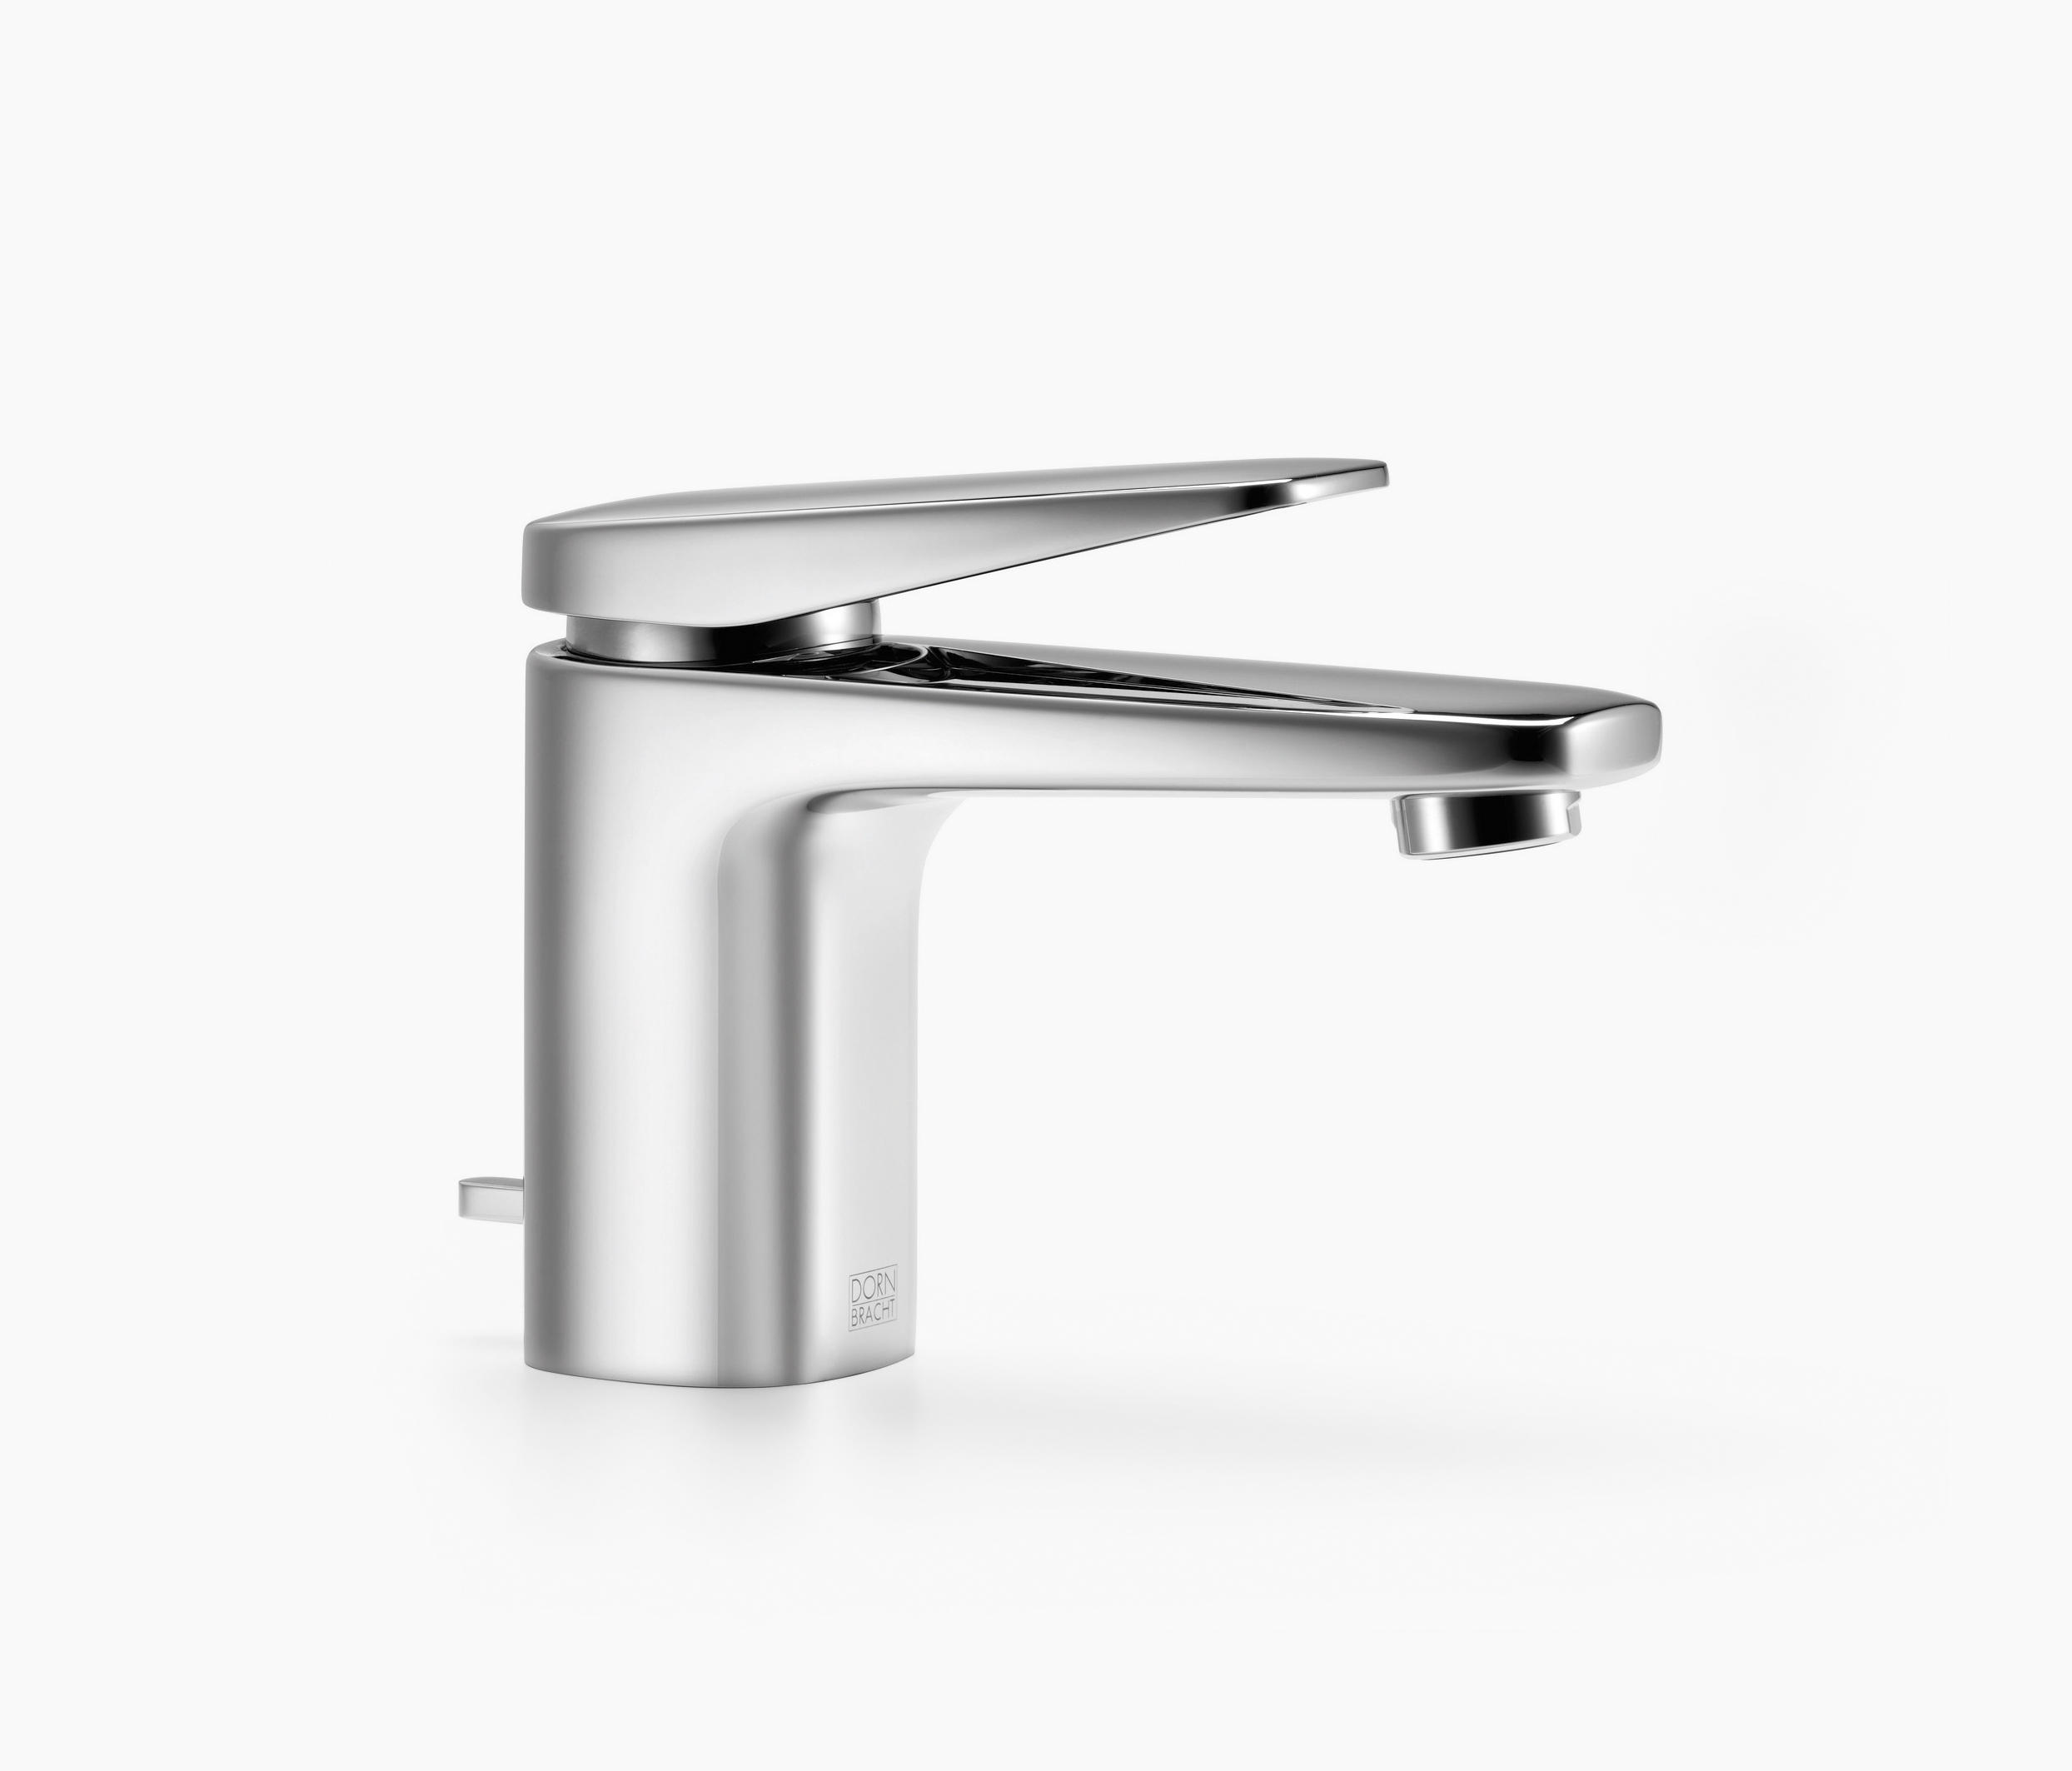 dornbracht modern bathroom faucets standard jeannerapone in within com wall serin american kingston new brass vessel cross handle faucet mount with mounted